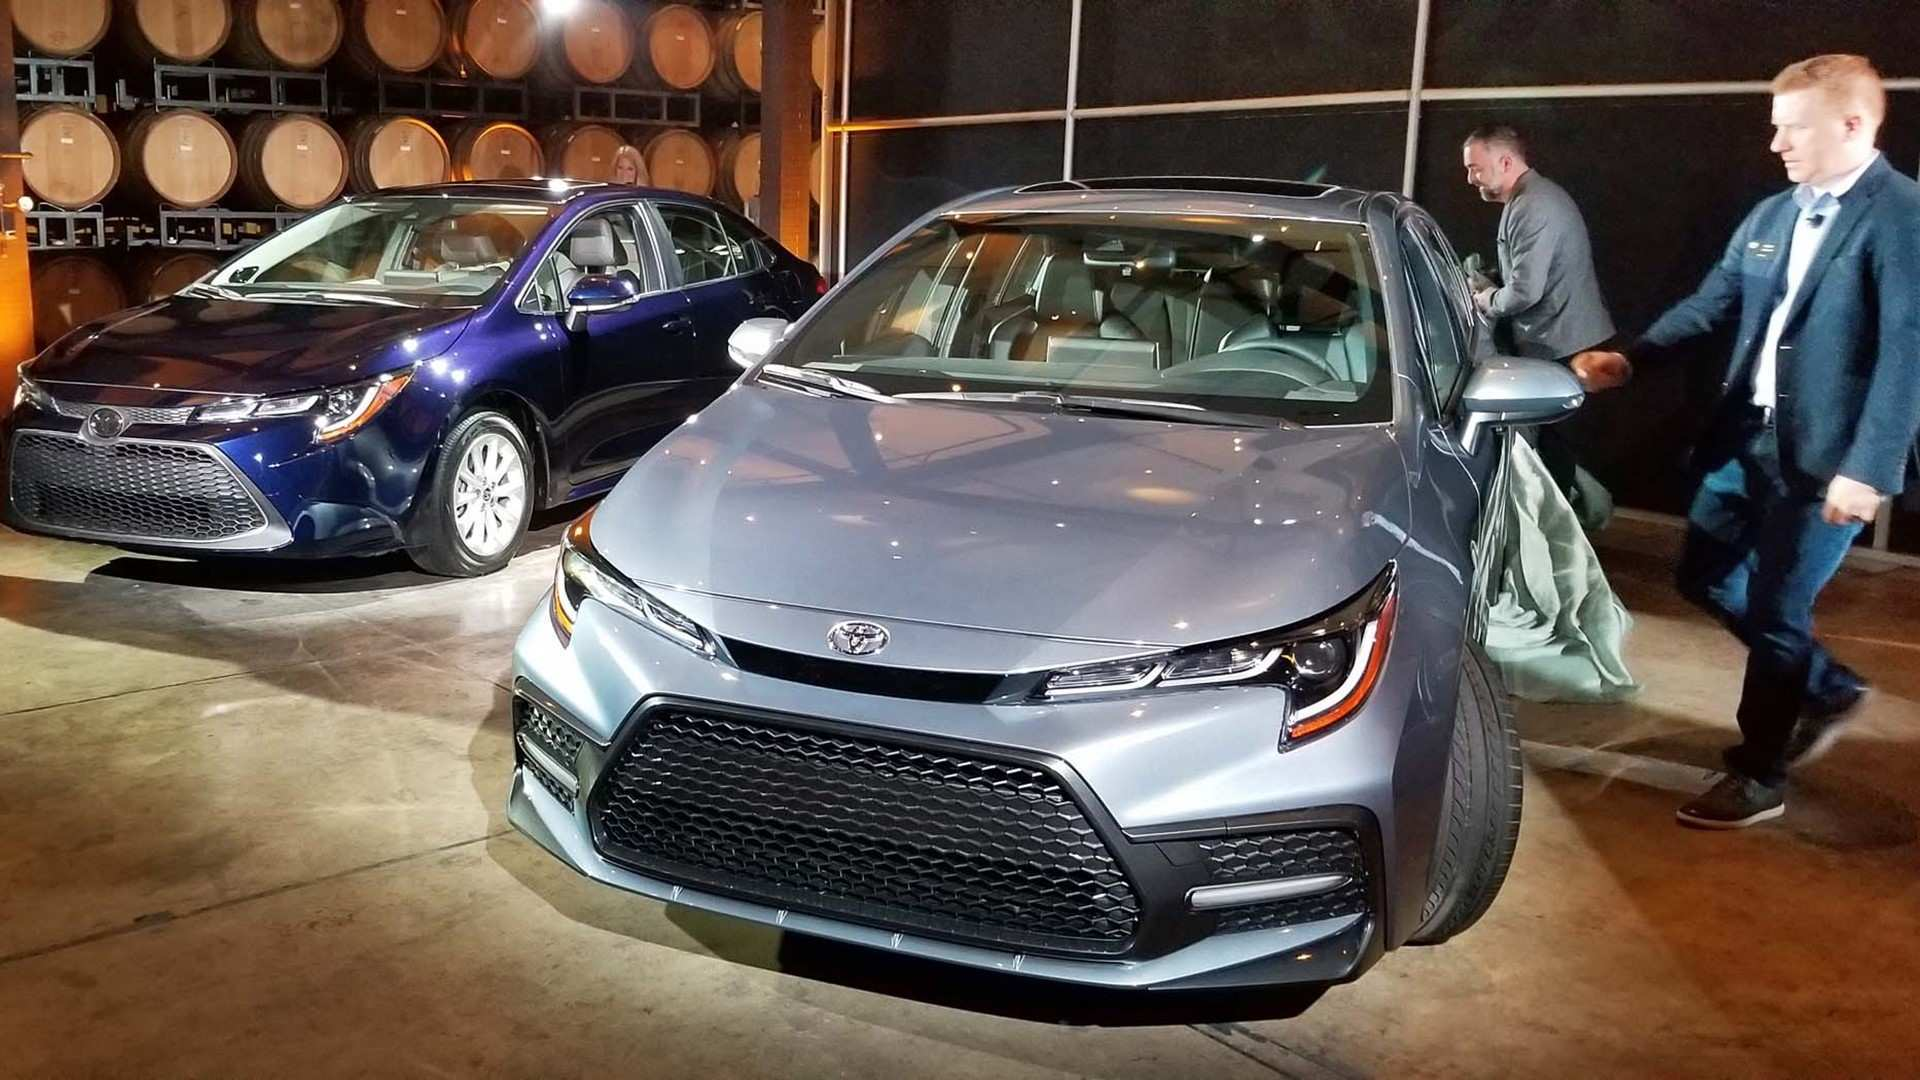 66 The Best Toyota Corolla 2020 Model Prices